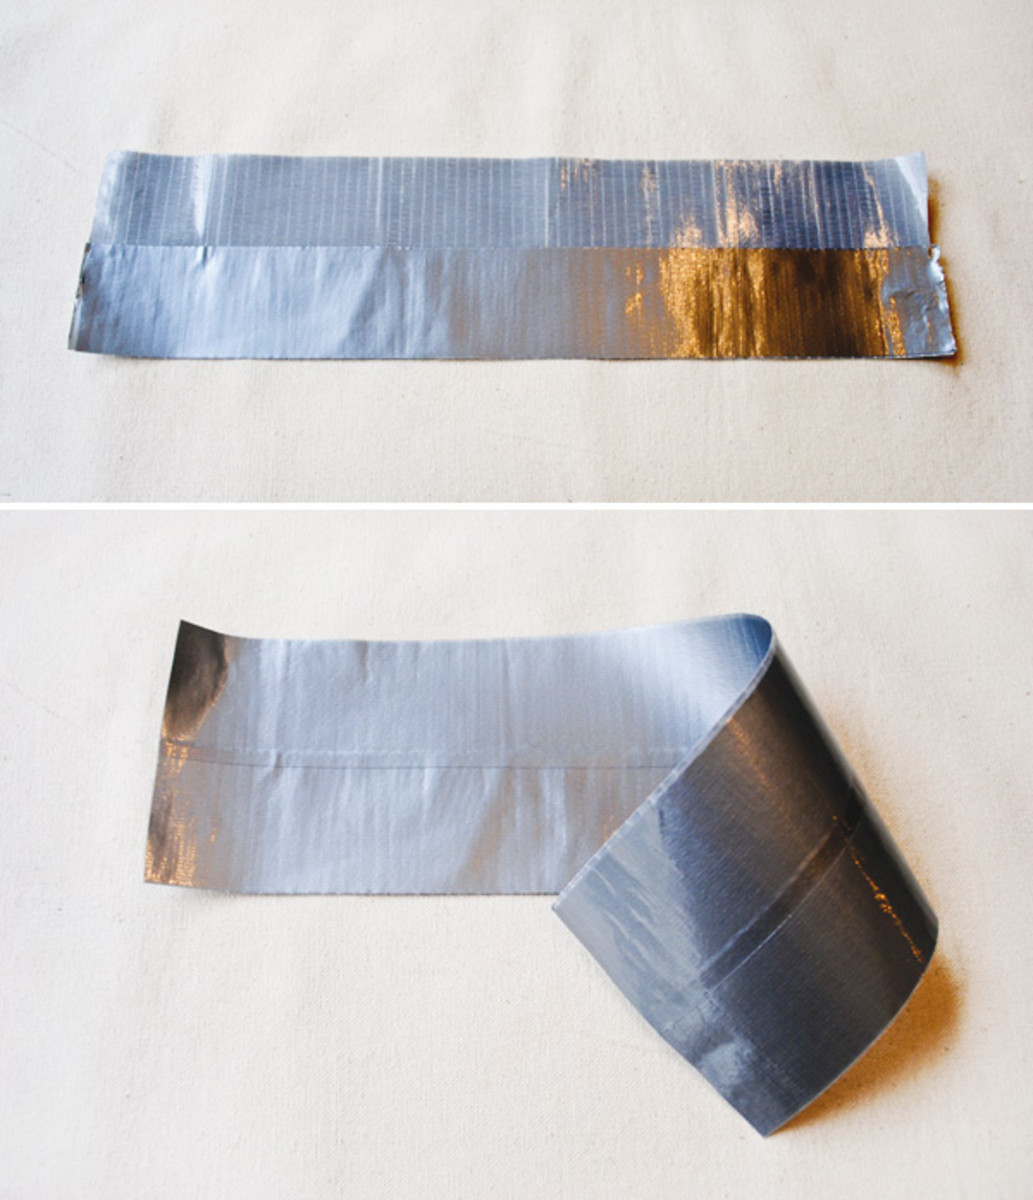 Strip of Duct Tape Left Behind